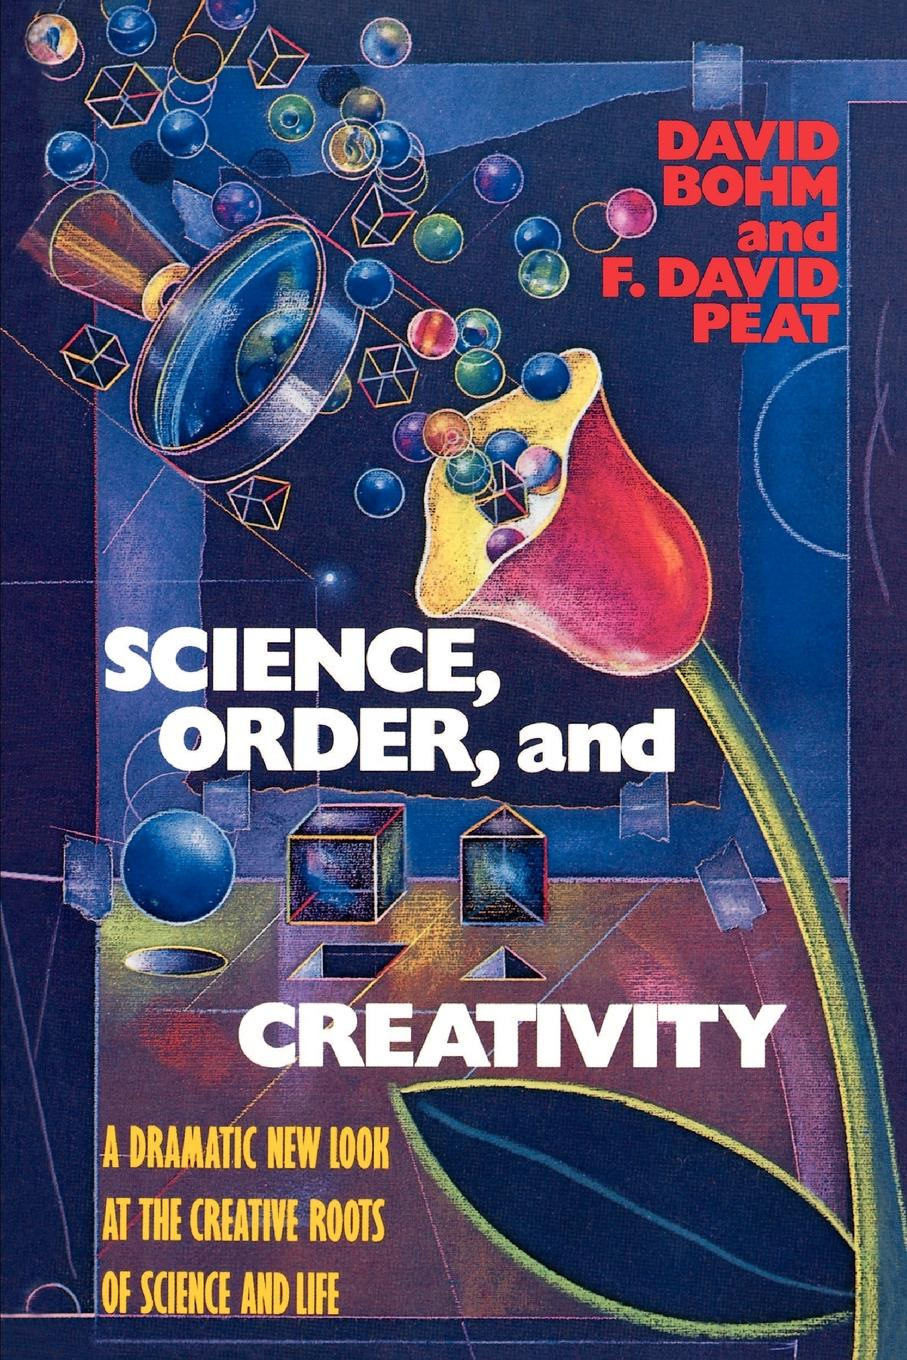 David Bohm, F. David Peat Science, Order, and Creativity creativity in life is directed by the heart